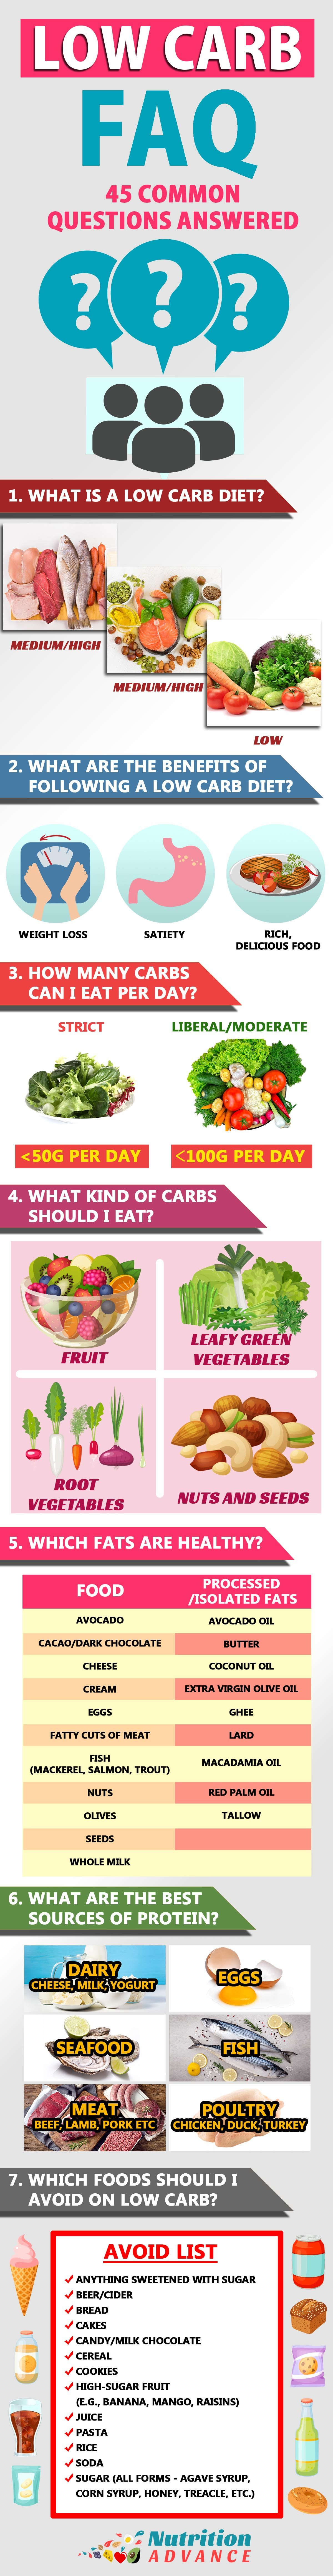 Ketogenic Diet Food List · Low Carb FAQ: 45 Common Questions Answered |  This guide answers some of the most